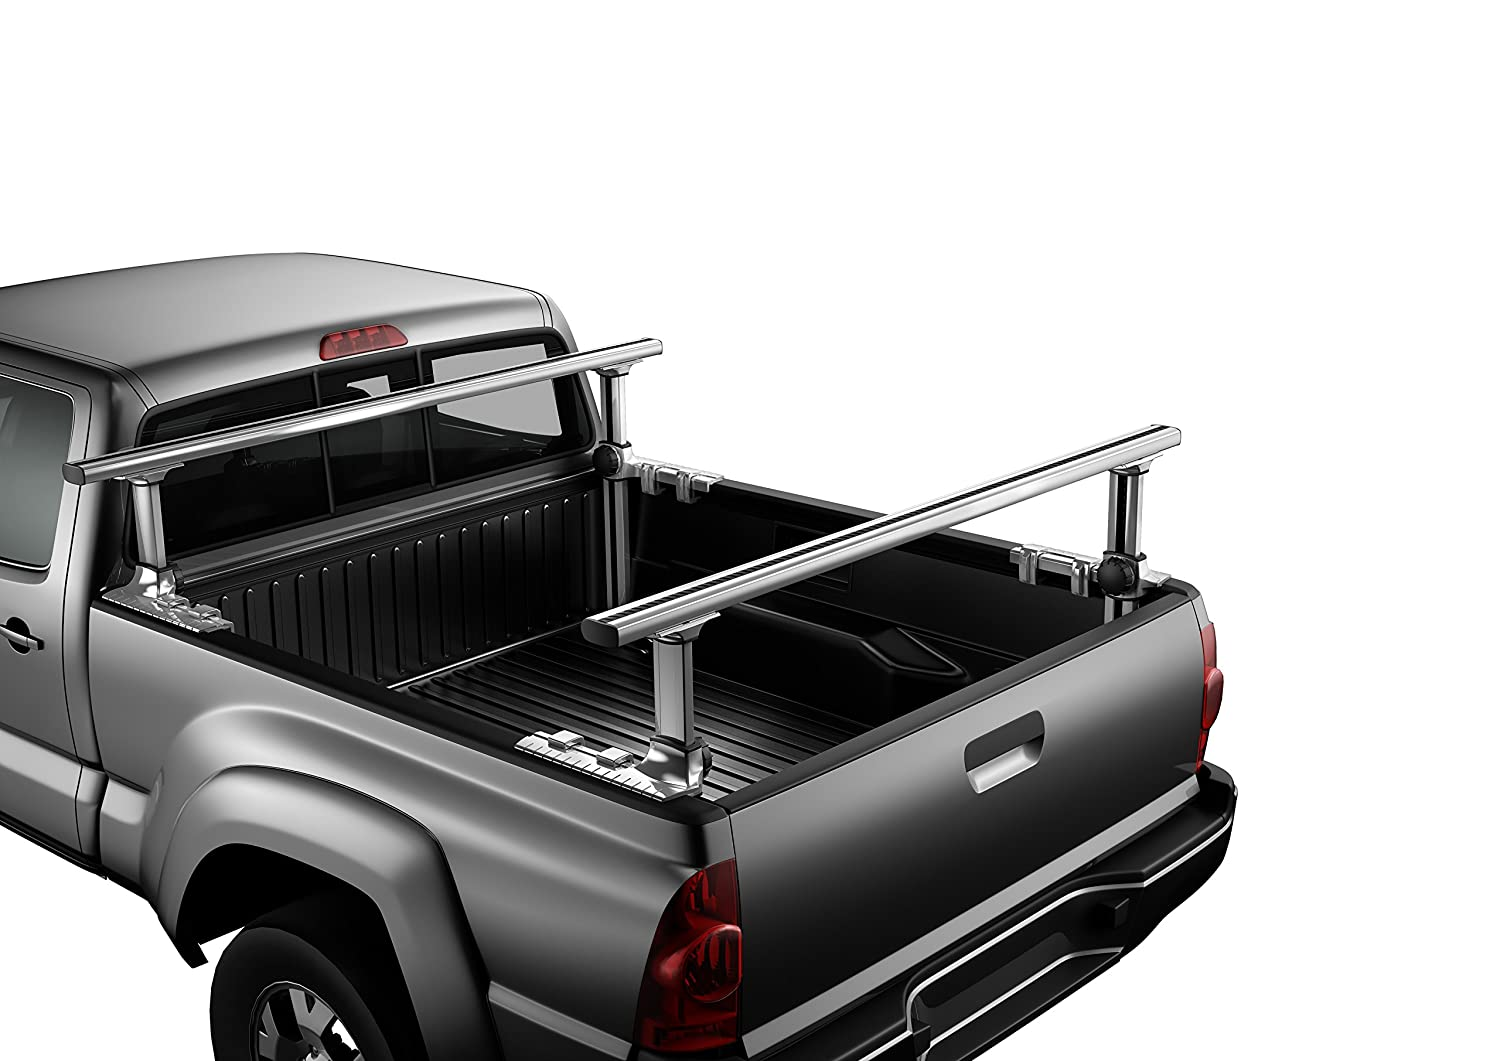 thule system cars racks rack for reviews best on images base pinterest bar prices ecr gallery square roof and dream